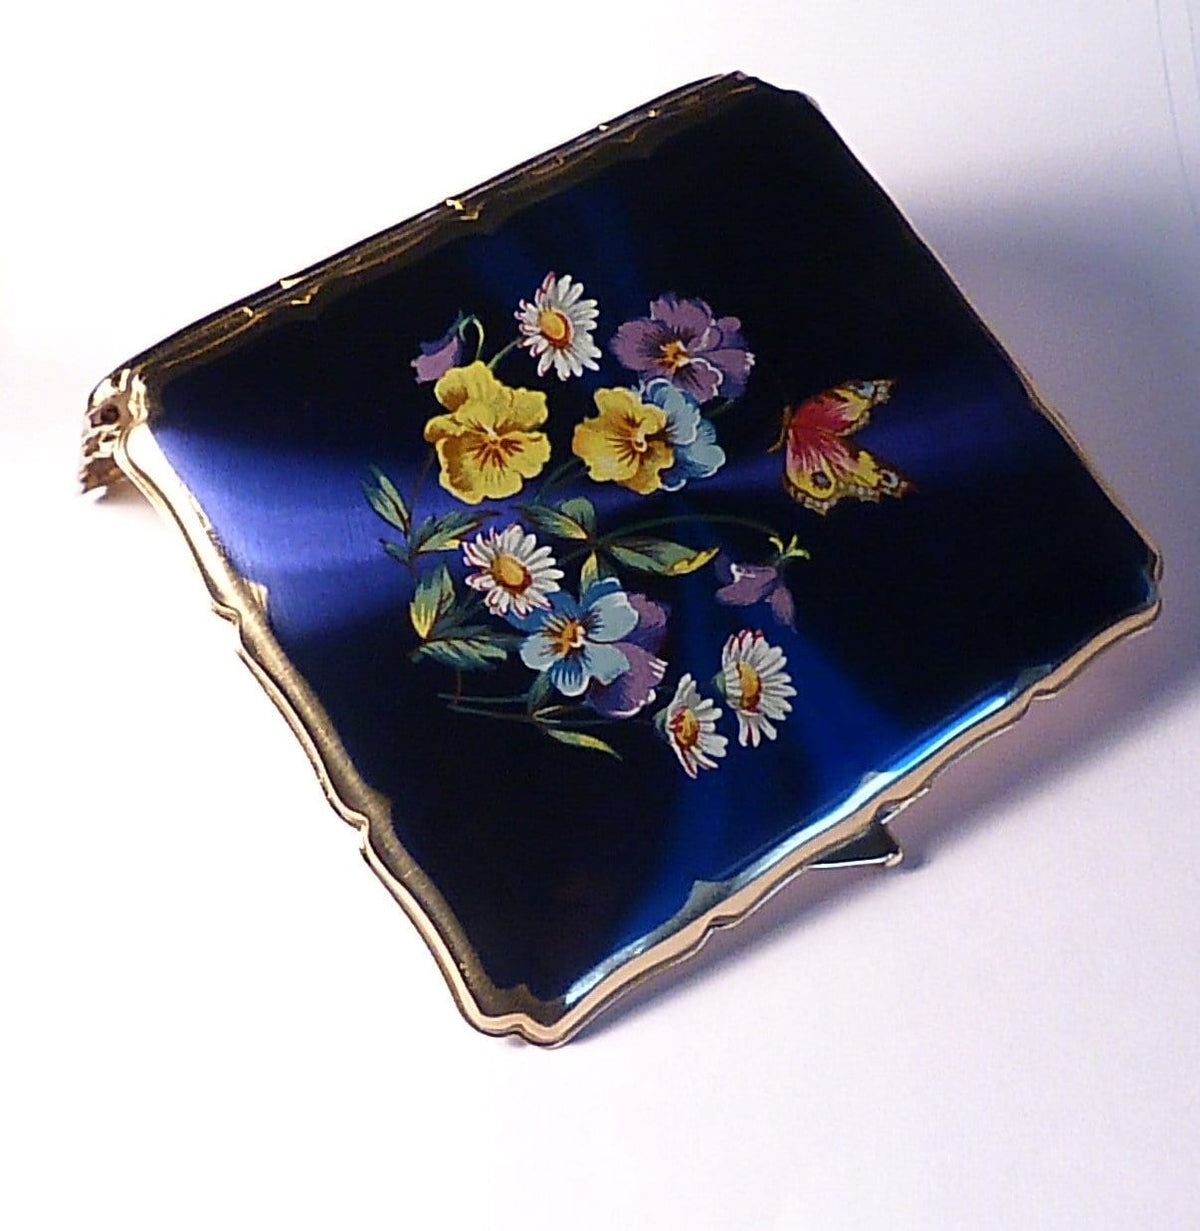 Women's cigarette holders mid-century antique Stratton cigarette case something blue gifts 1950s